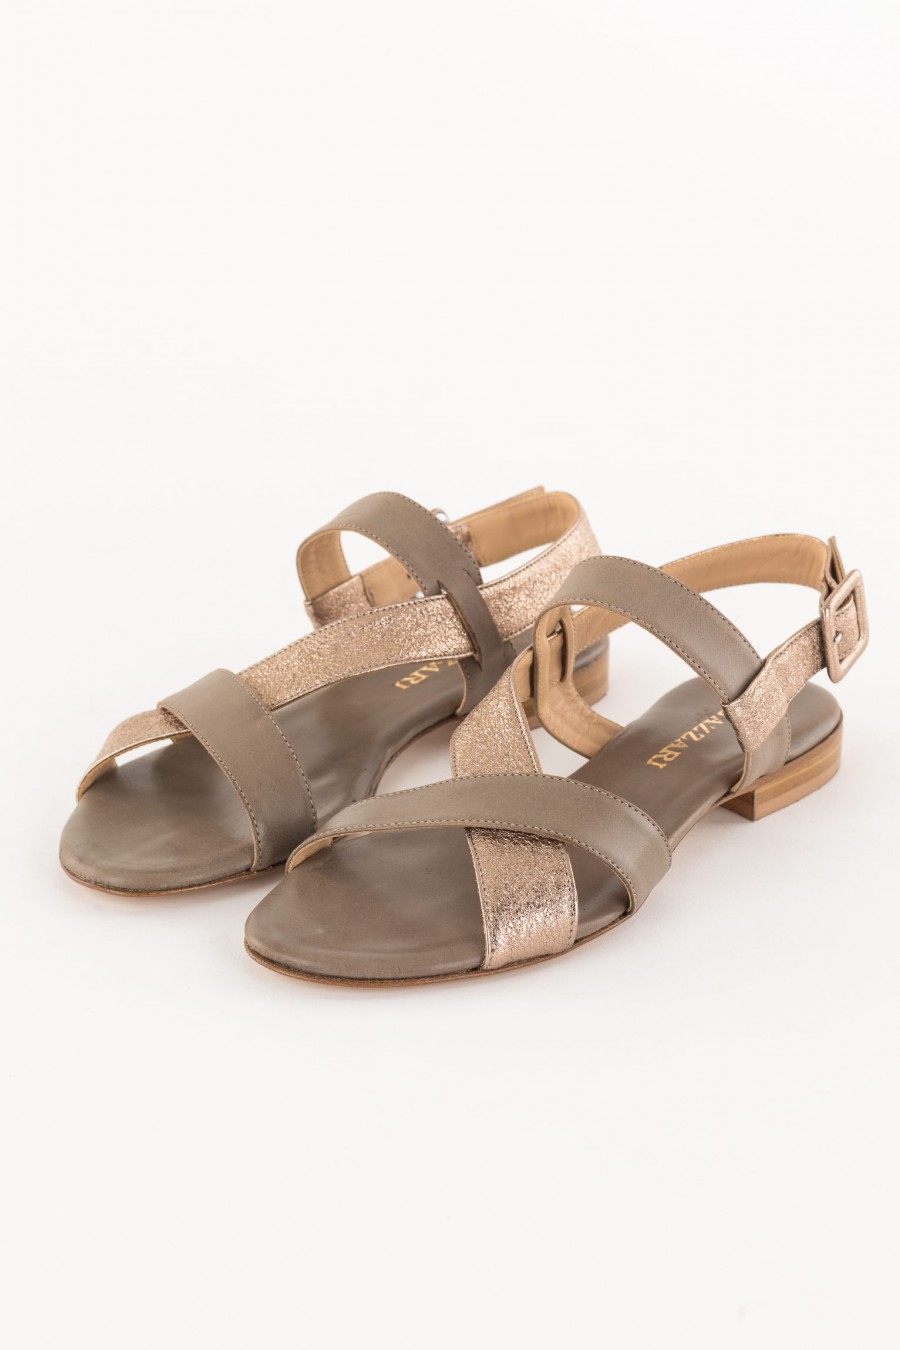 Taupe and copper sandal